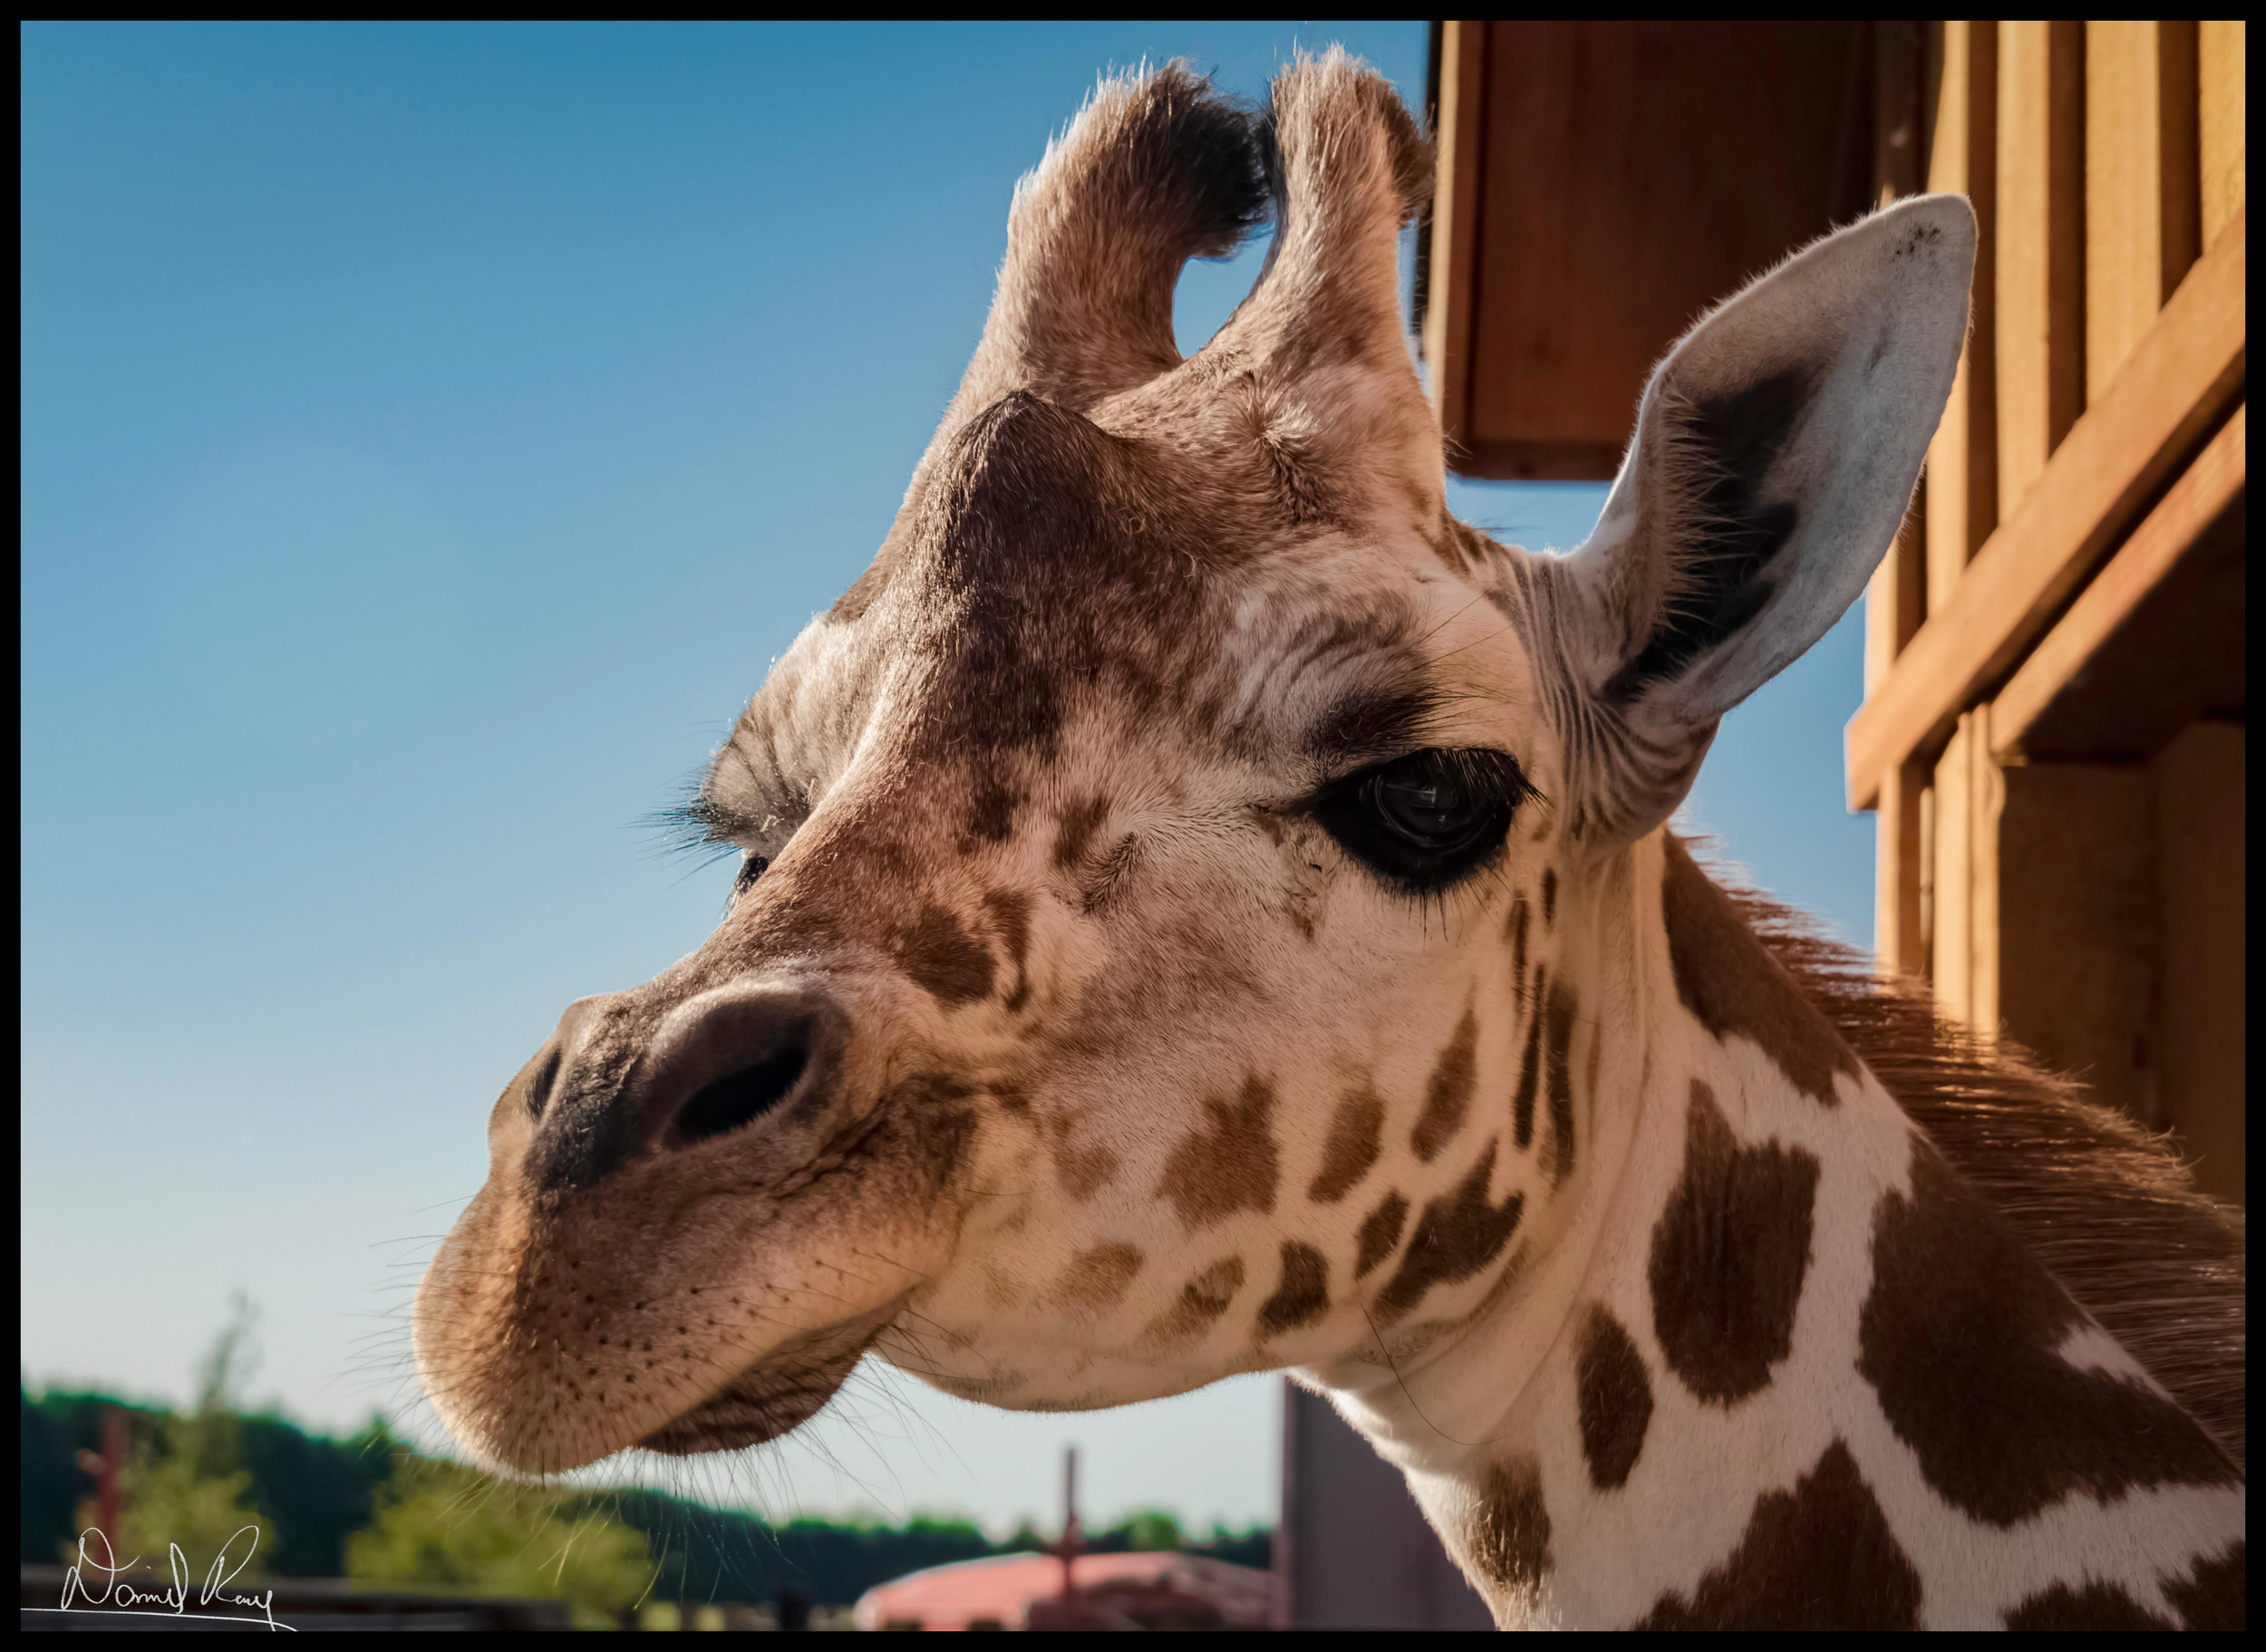 Patches the Giraffe at White Post Farms